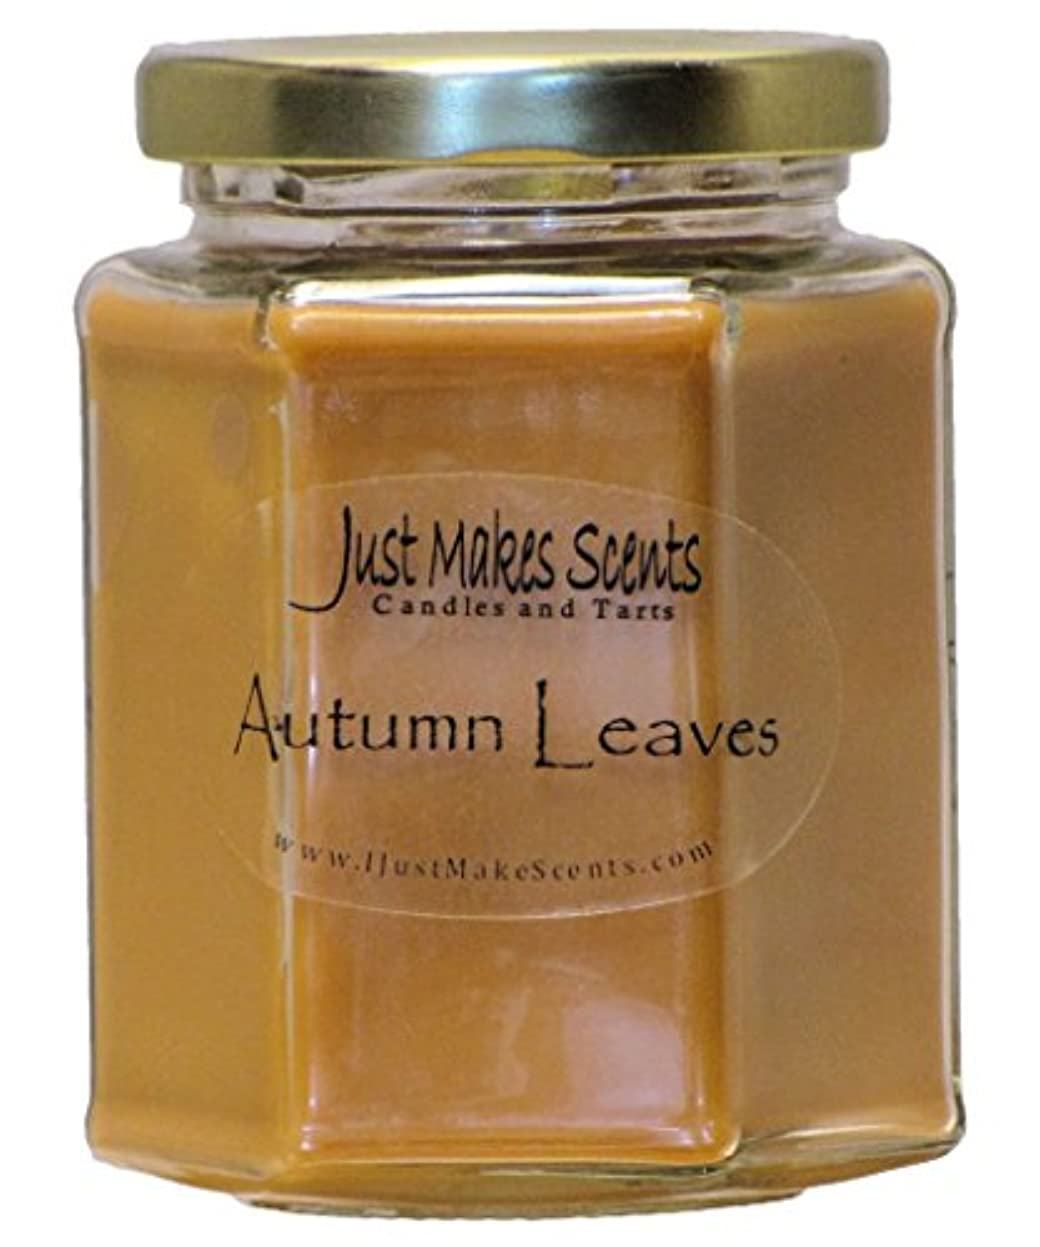 宇宙高度ところでAutumn Leaves香りつきBlended Soy Candle by Just Makes Scents